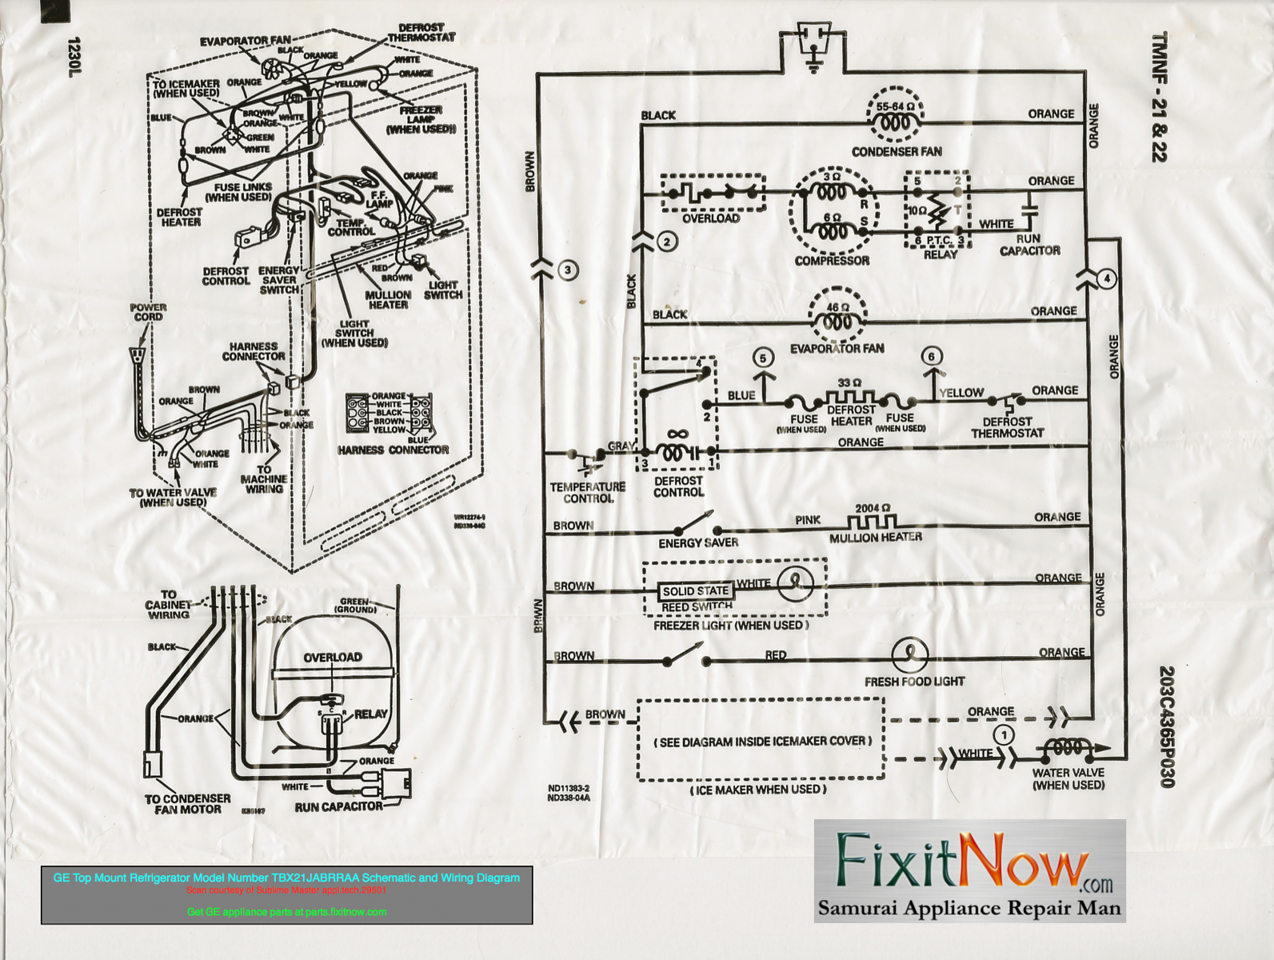 4904374061_e8eb3df6c6_o X2 wiring diagrams and schematics appliantology temperature control wiring diagram at alyssarenee.co